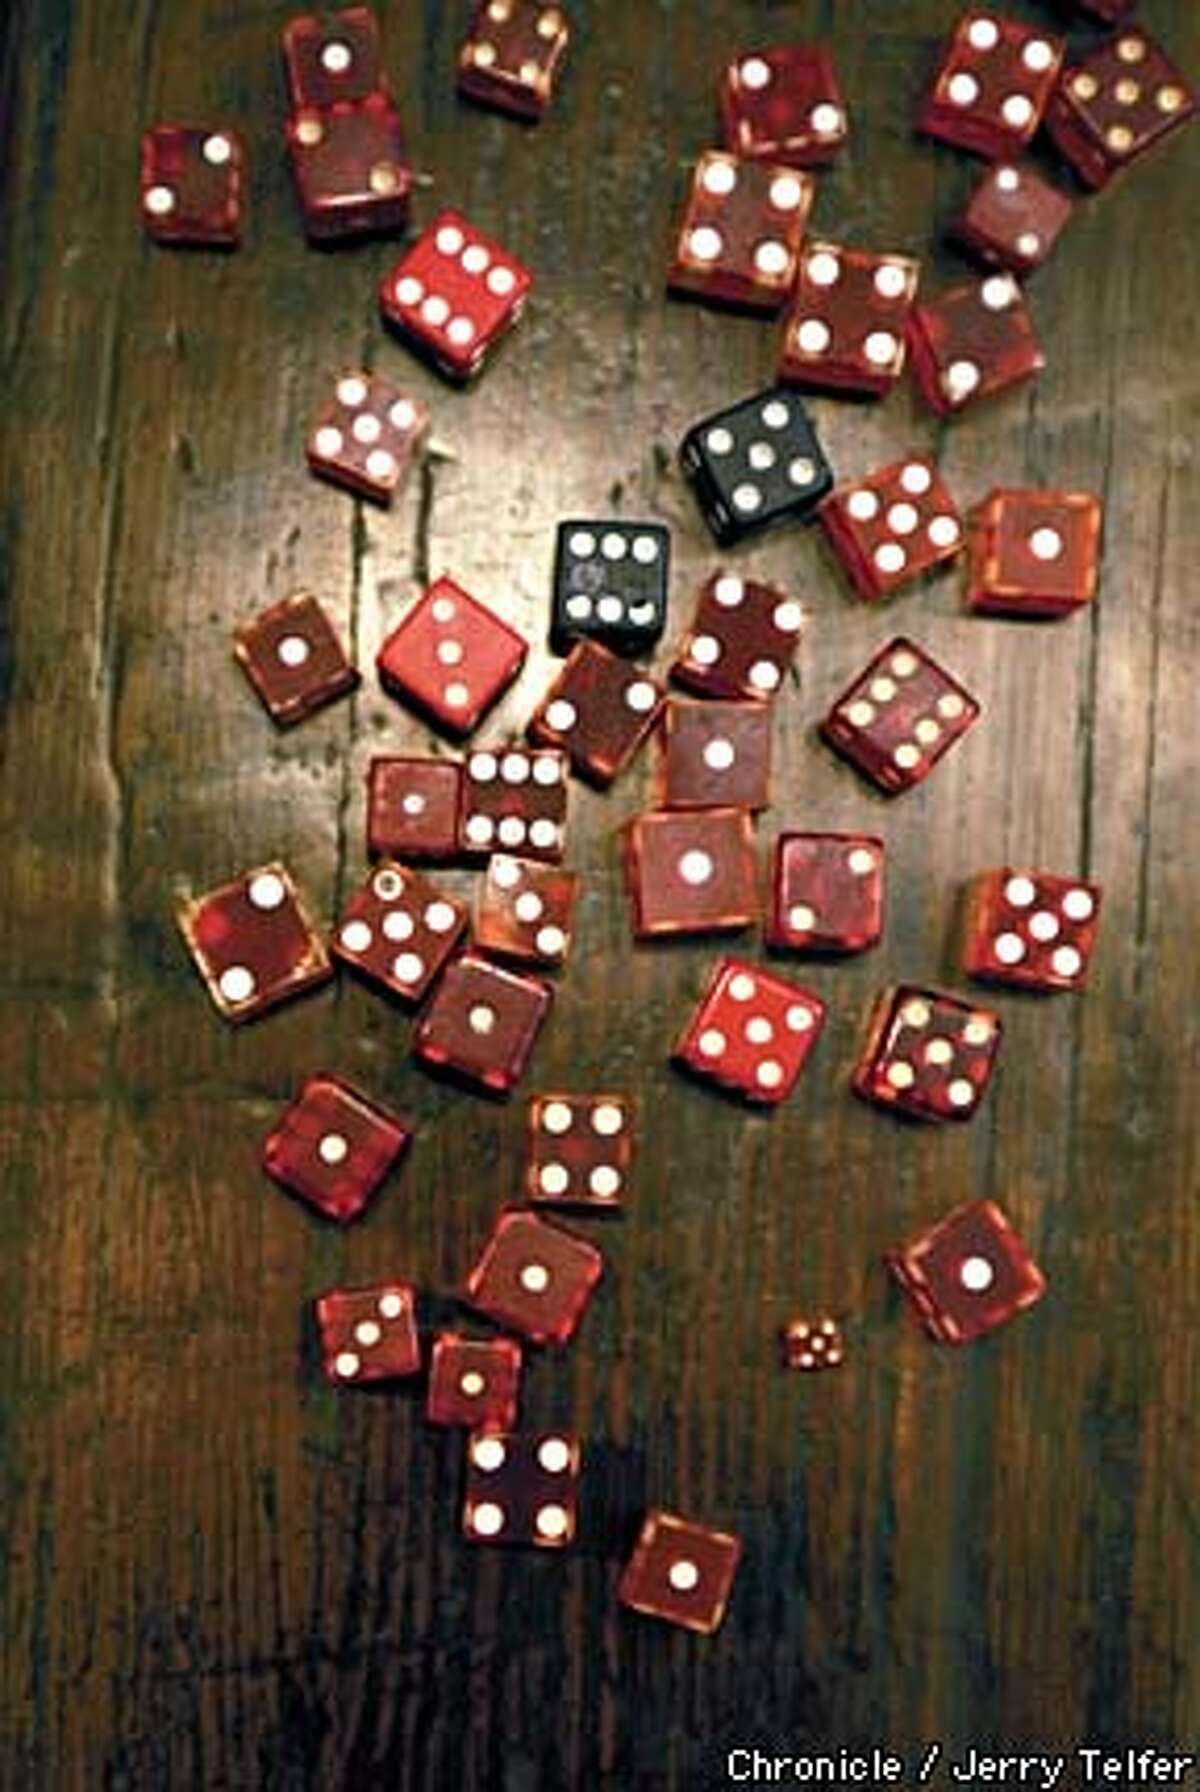 Loaded dice ($1.50 each) are among the oddities at Zedd. Chronicle photo by Jerry Telfer